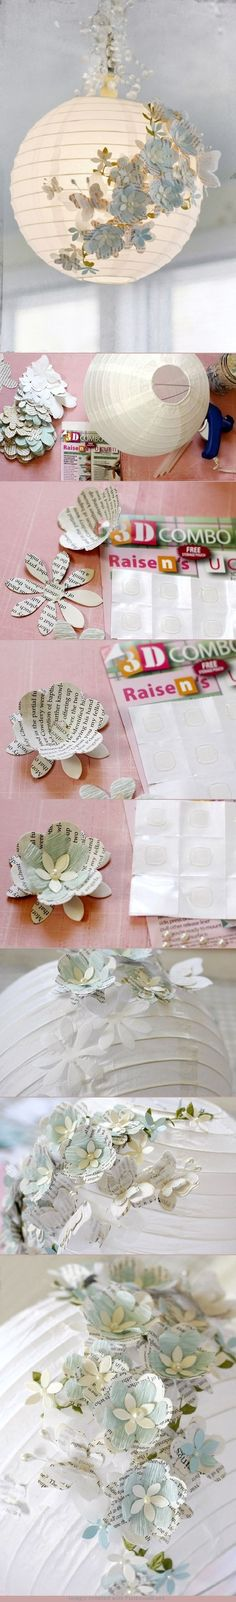 DIY 3D PAPER LANTERN - DIY WEDDING IDEAS